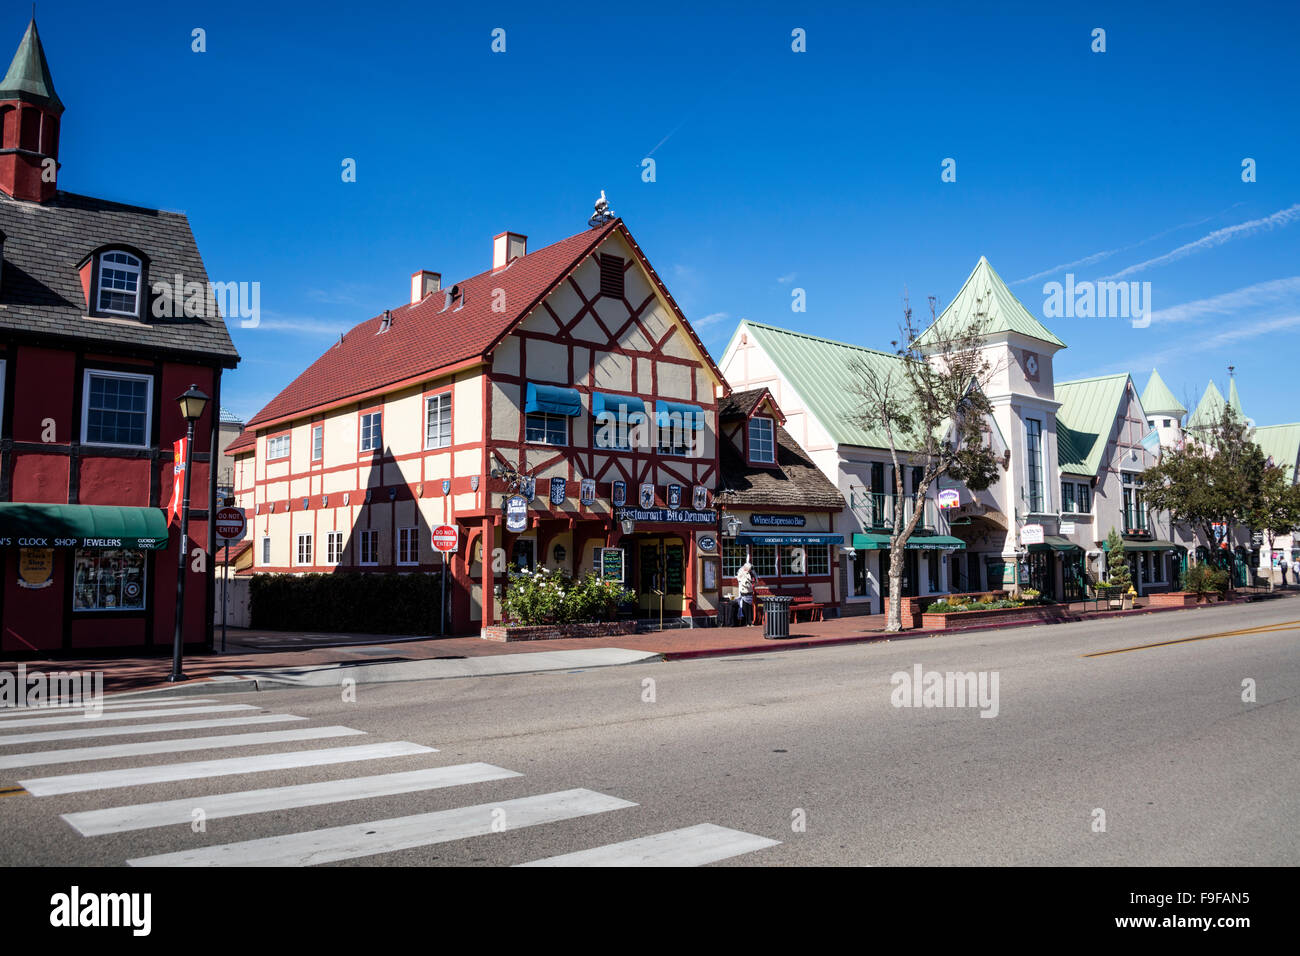 Bit O' Denmark, Alisal Road, Solvang, Ynez Valley, Santa Barbara County, California, USA. - Stock Image